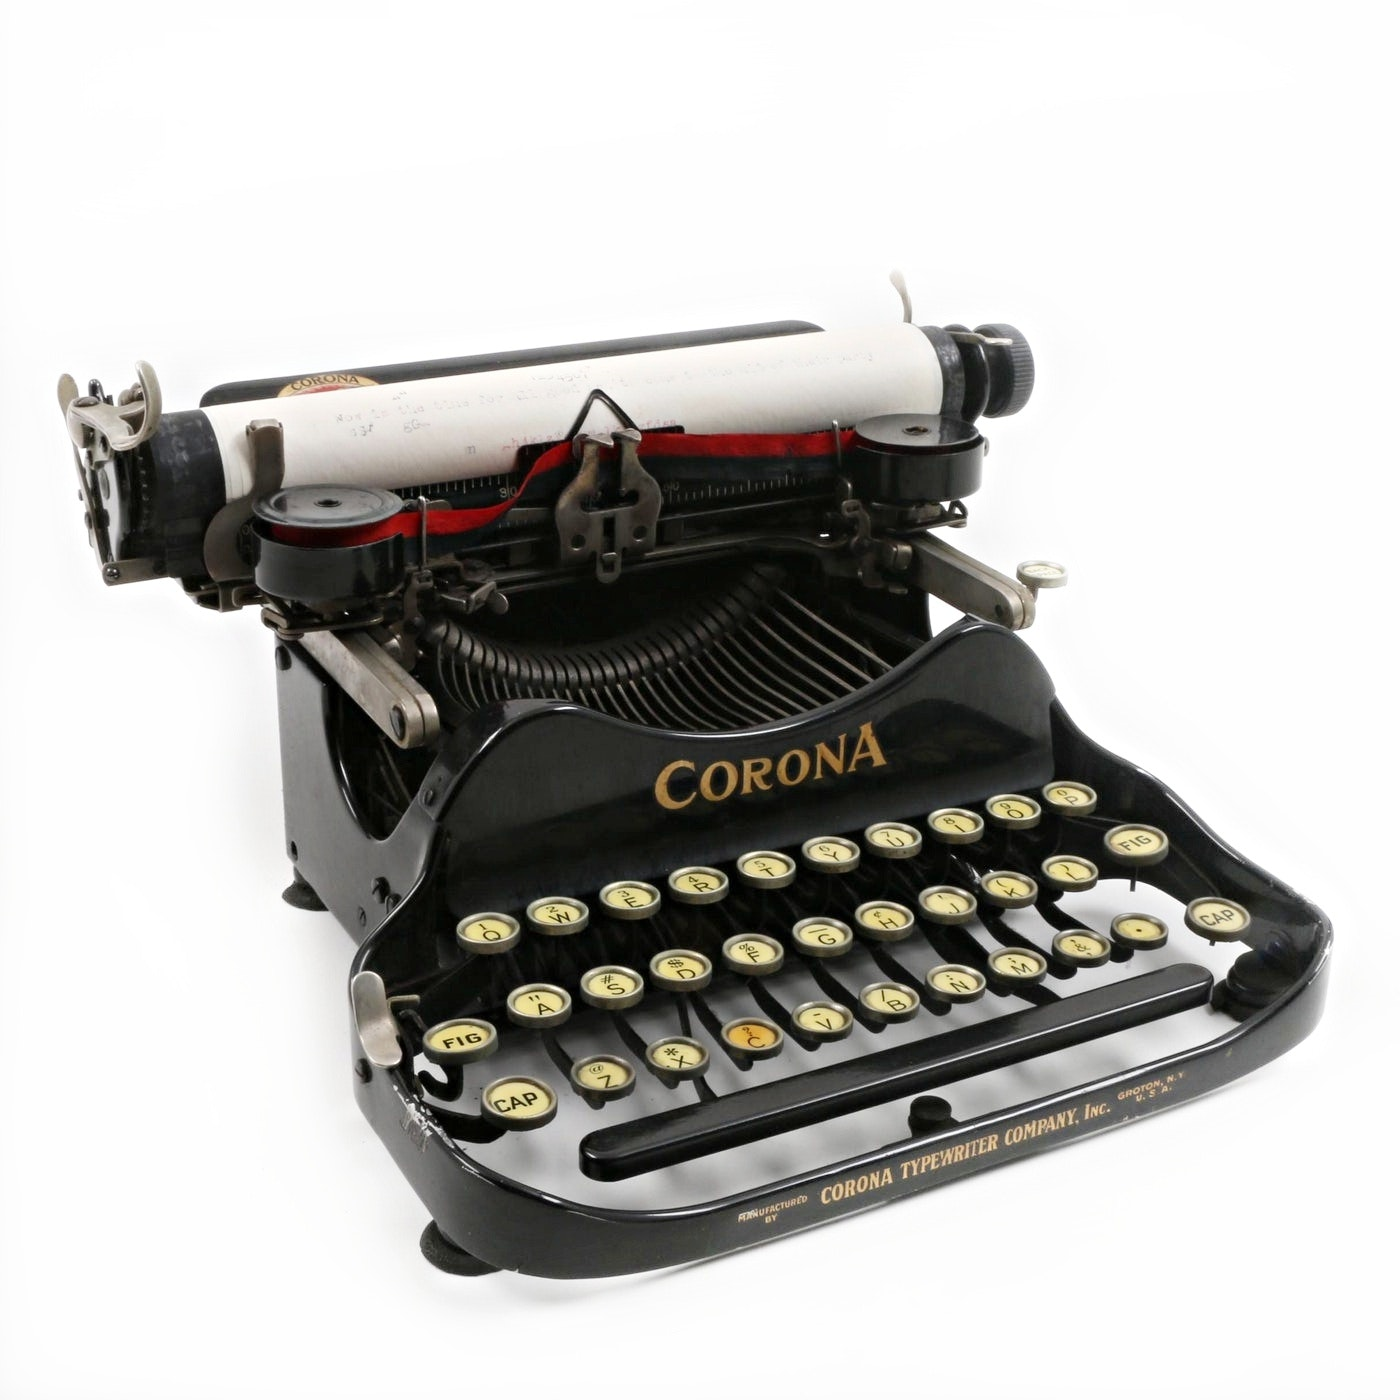 1917 Corona 3 Folding Typewriter with Carrying Case